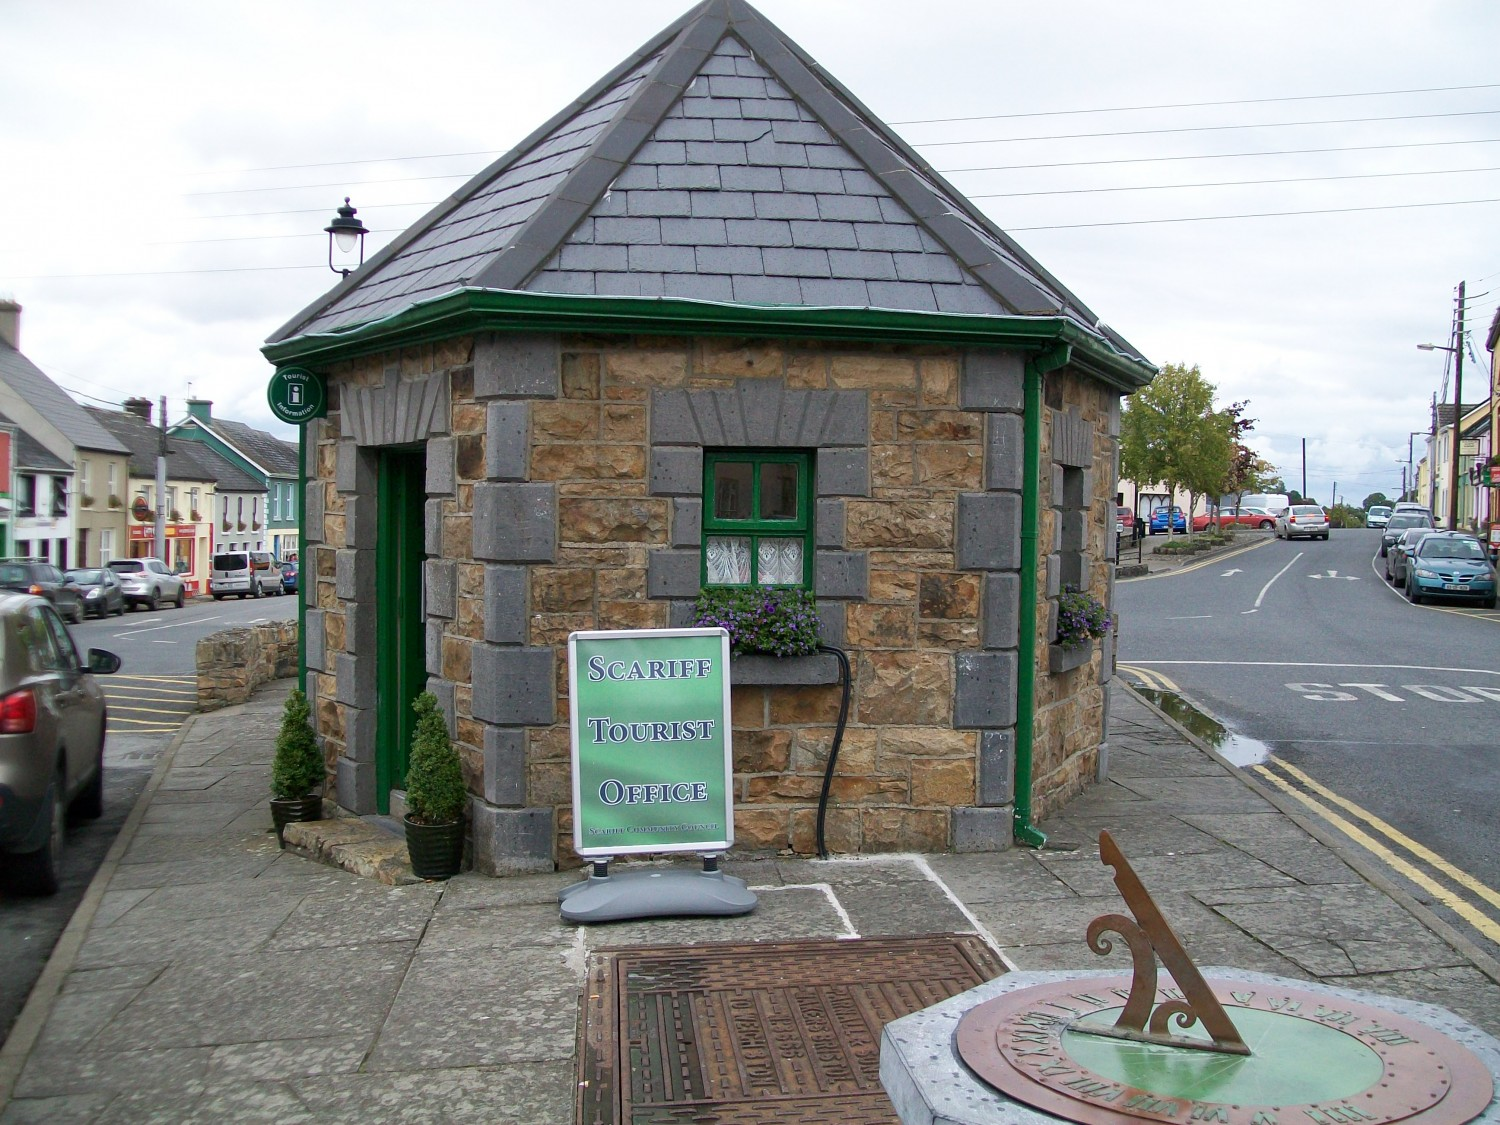 Scarriff Tourist Office